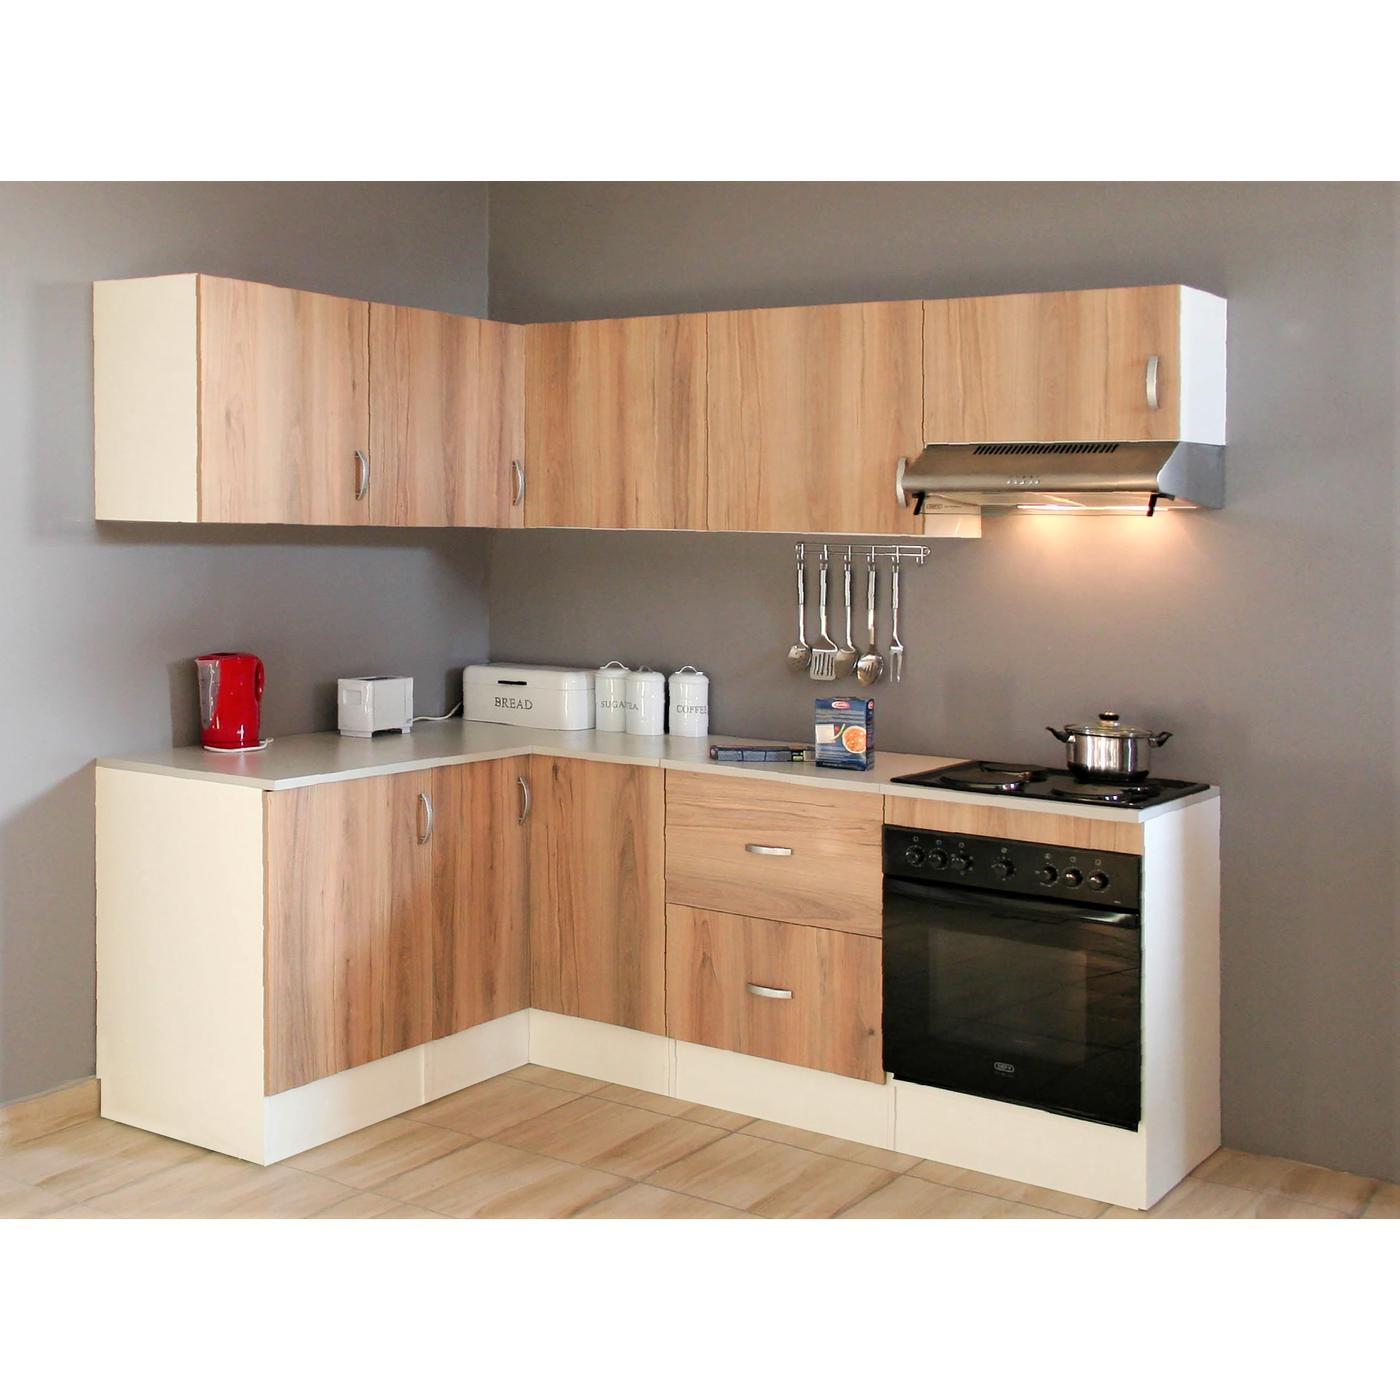 Kitchen Furniture Leroy